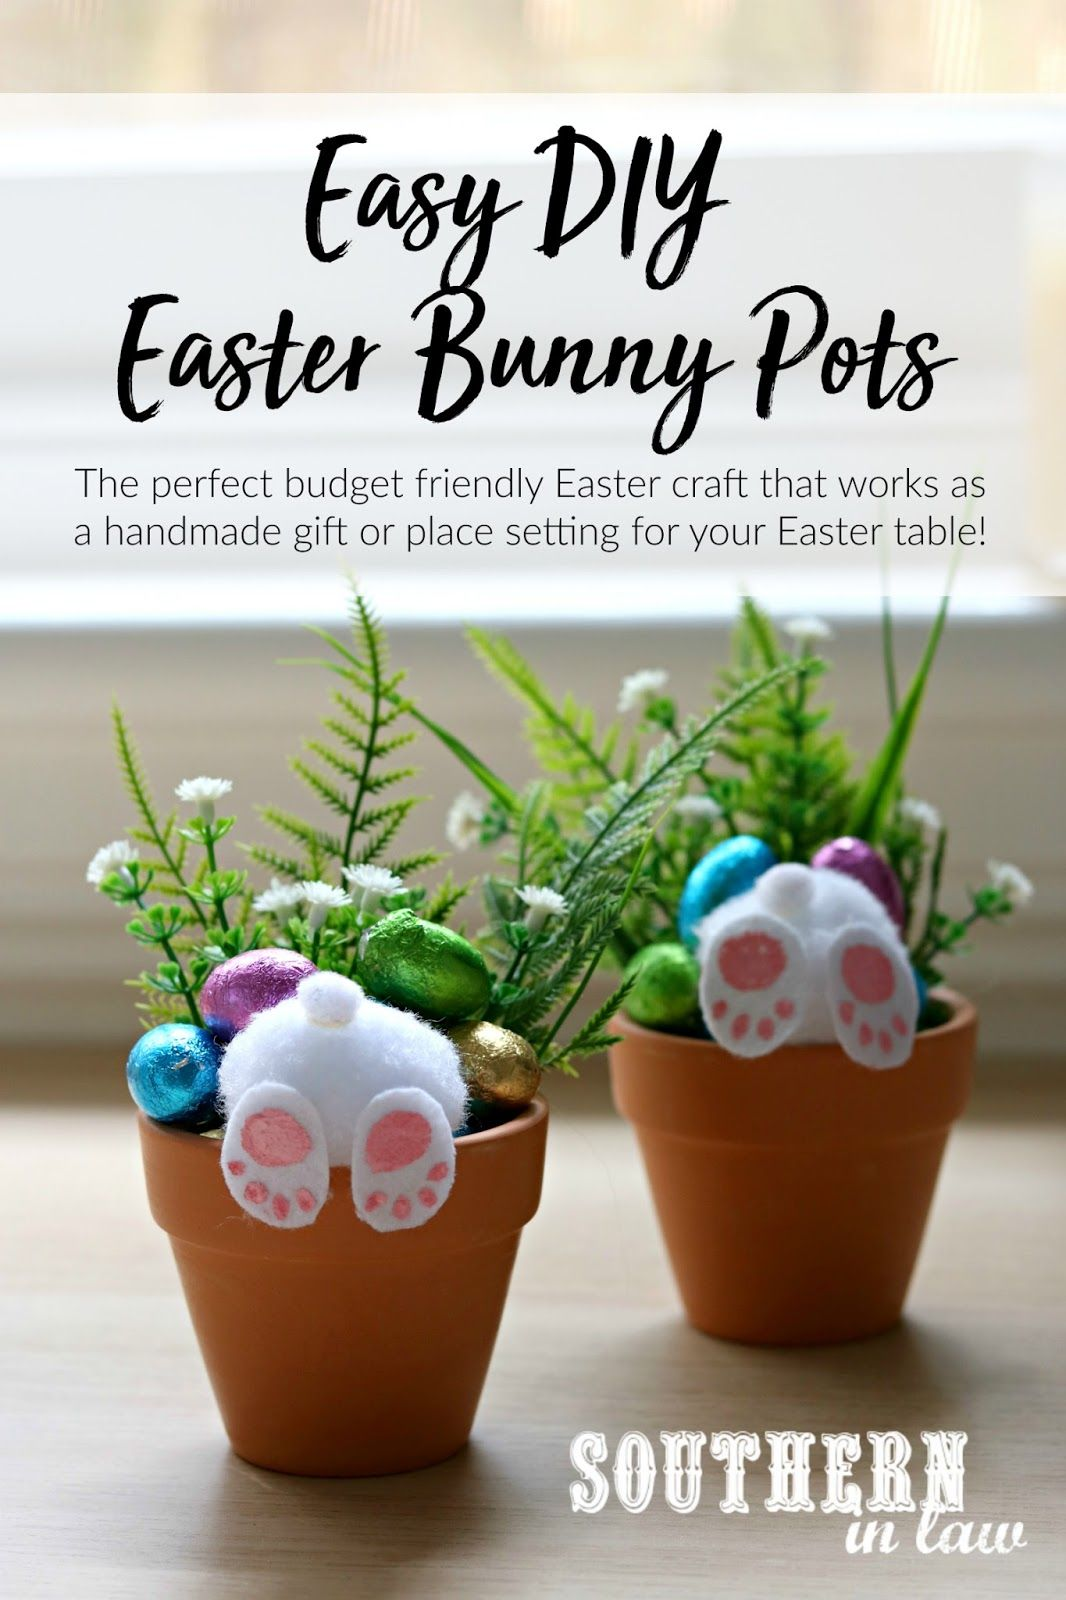 How to make your own curious easter bunny pots an easy diy easter easy diy curious easter bunny pots handmade easter gift ideas place settings placecards negle Images